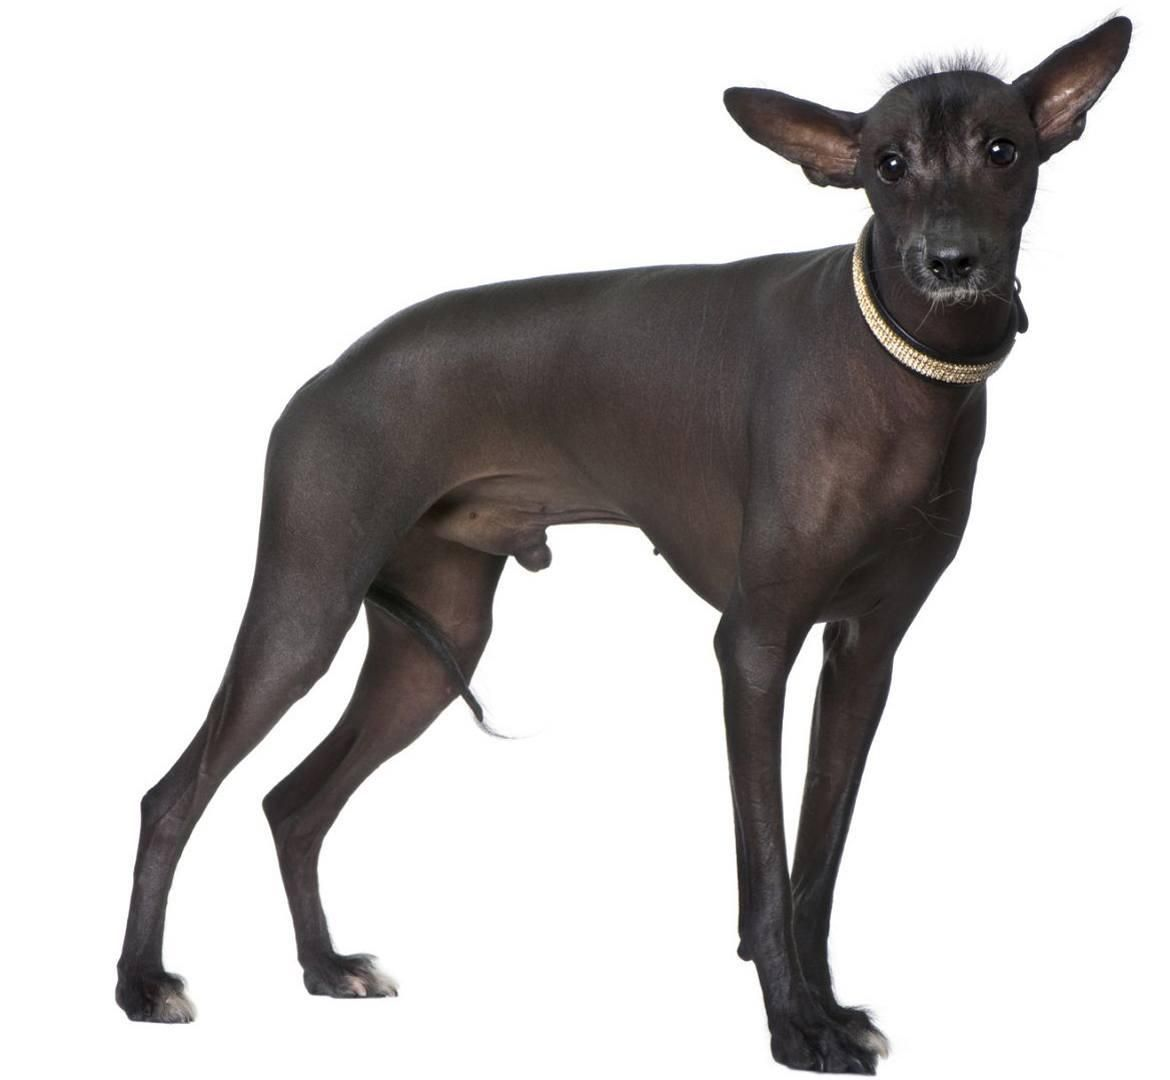 Peruvian Inca Orchid Information - Dog Breeds at thepetowners